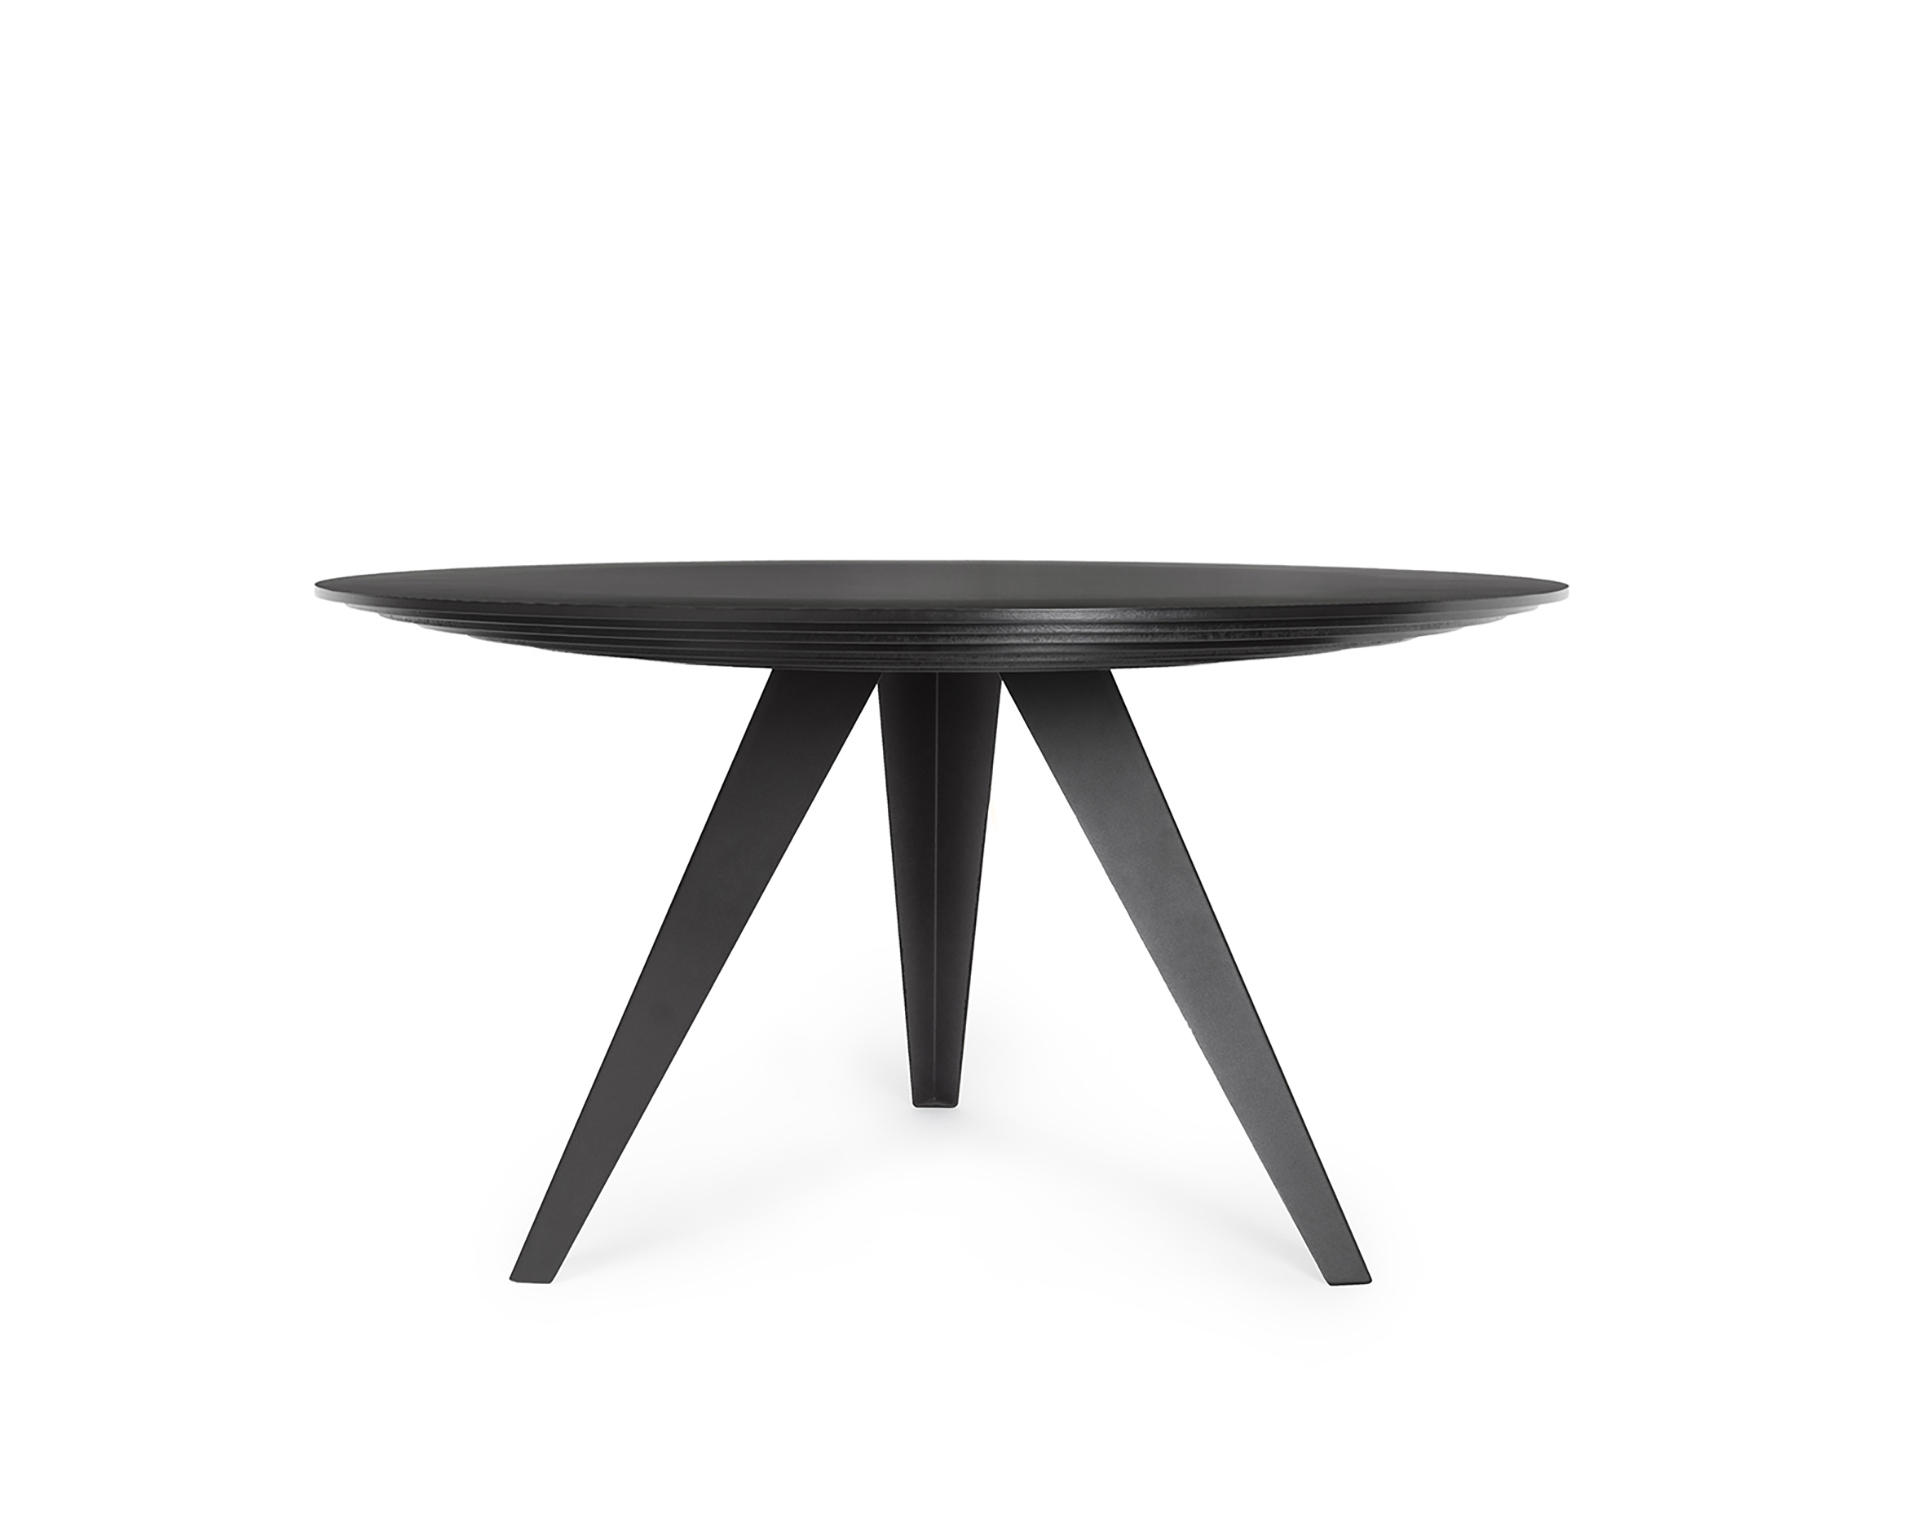 Eettafels Rond Modern.Round Dining Table Belly L Kees Marcelis L Odesi Your Dutch Design